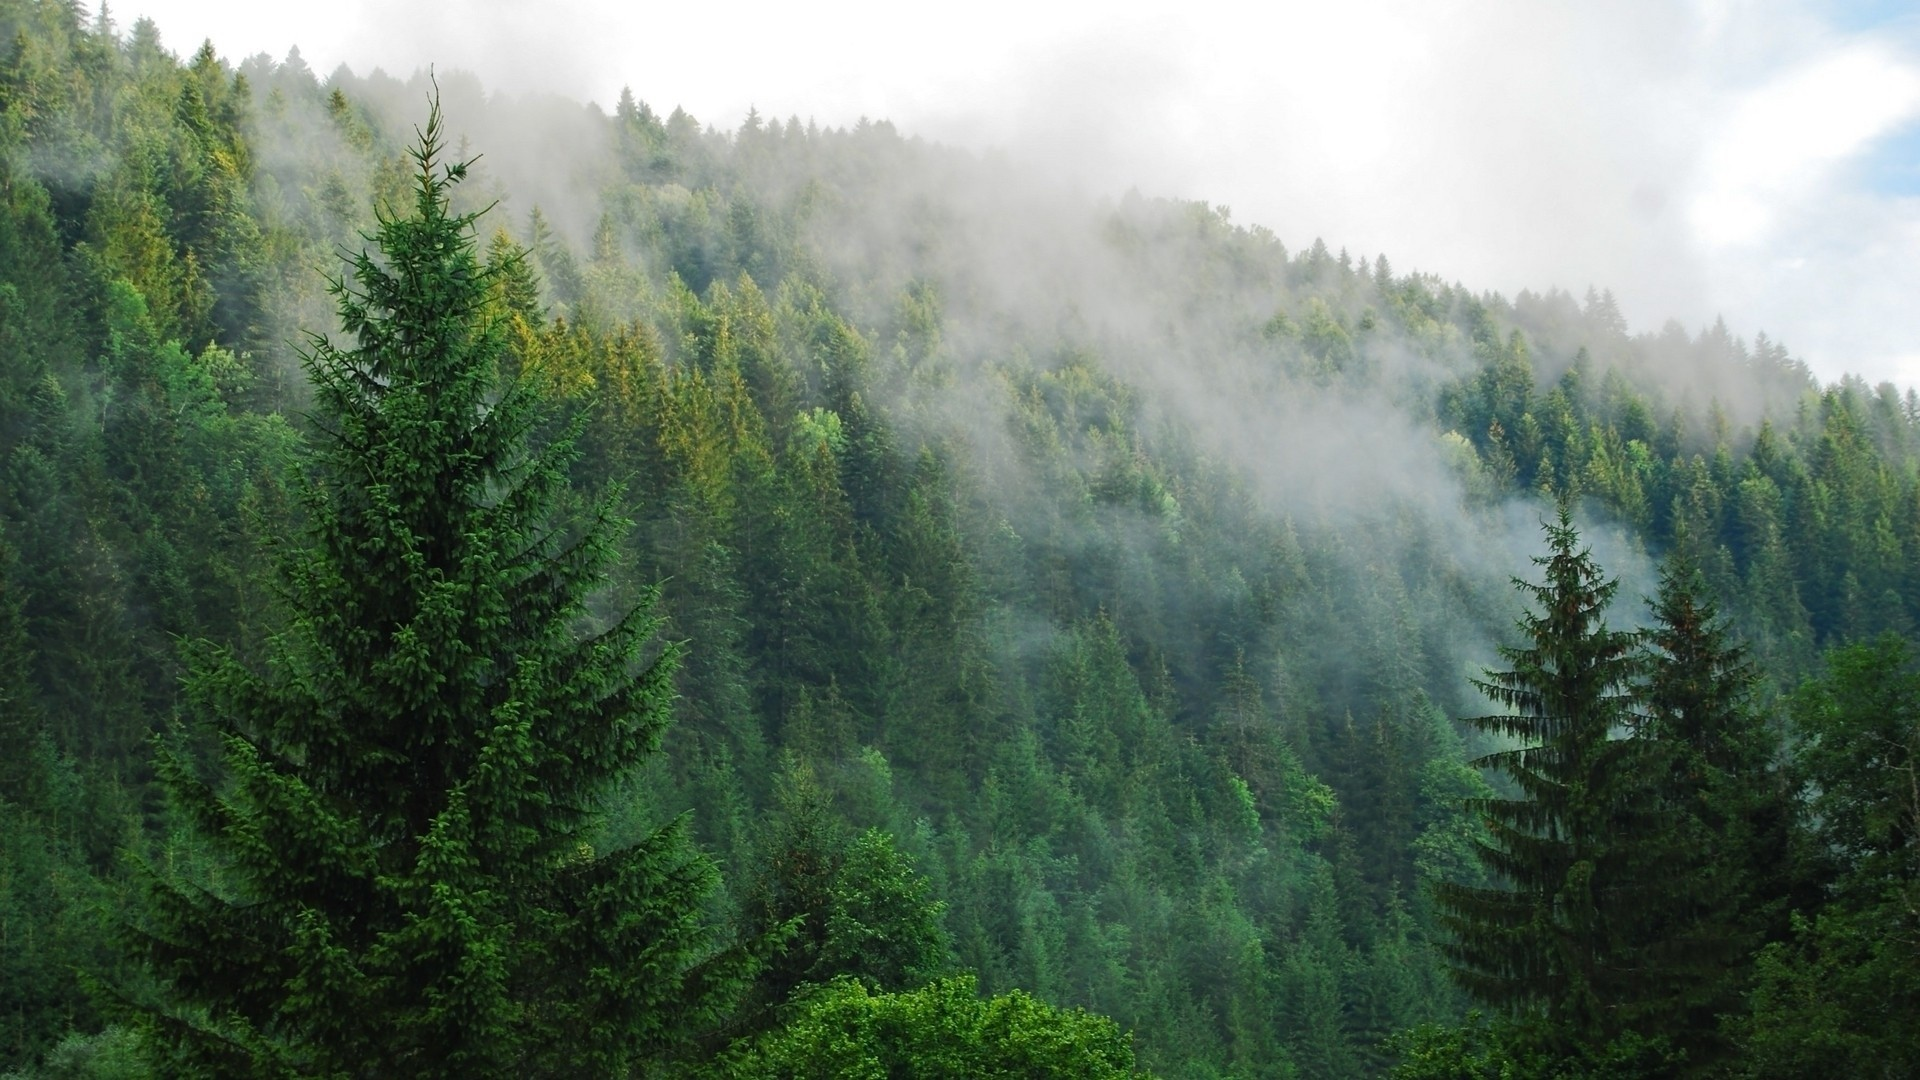 Foggy Pine Forest Wallpaper Pictures 13879